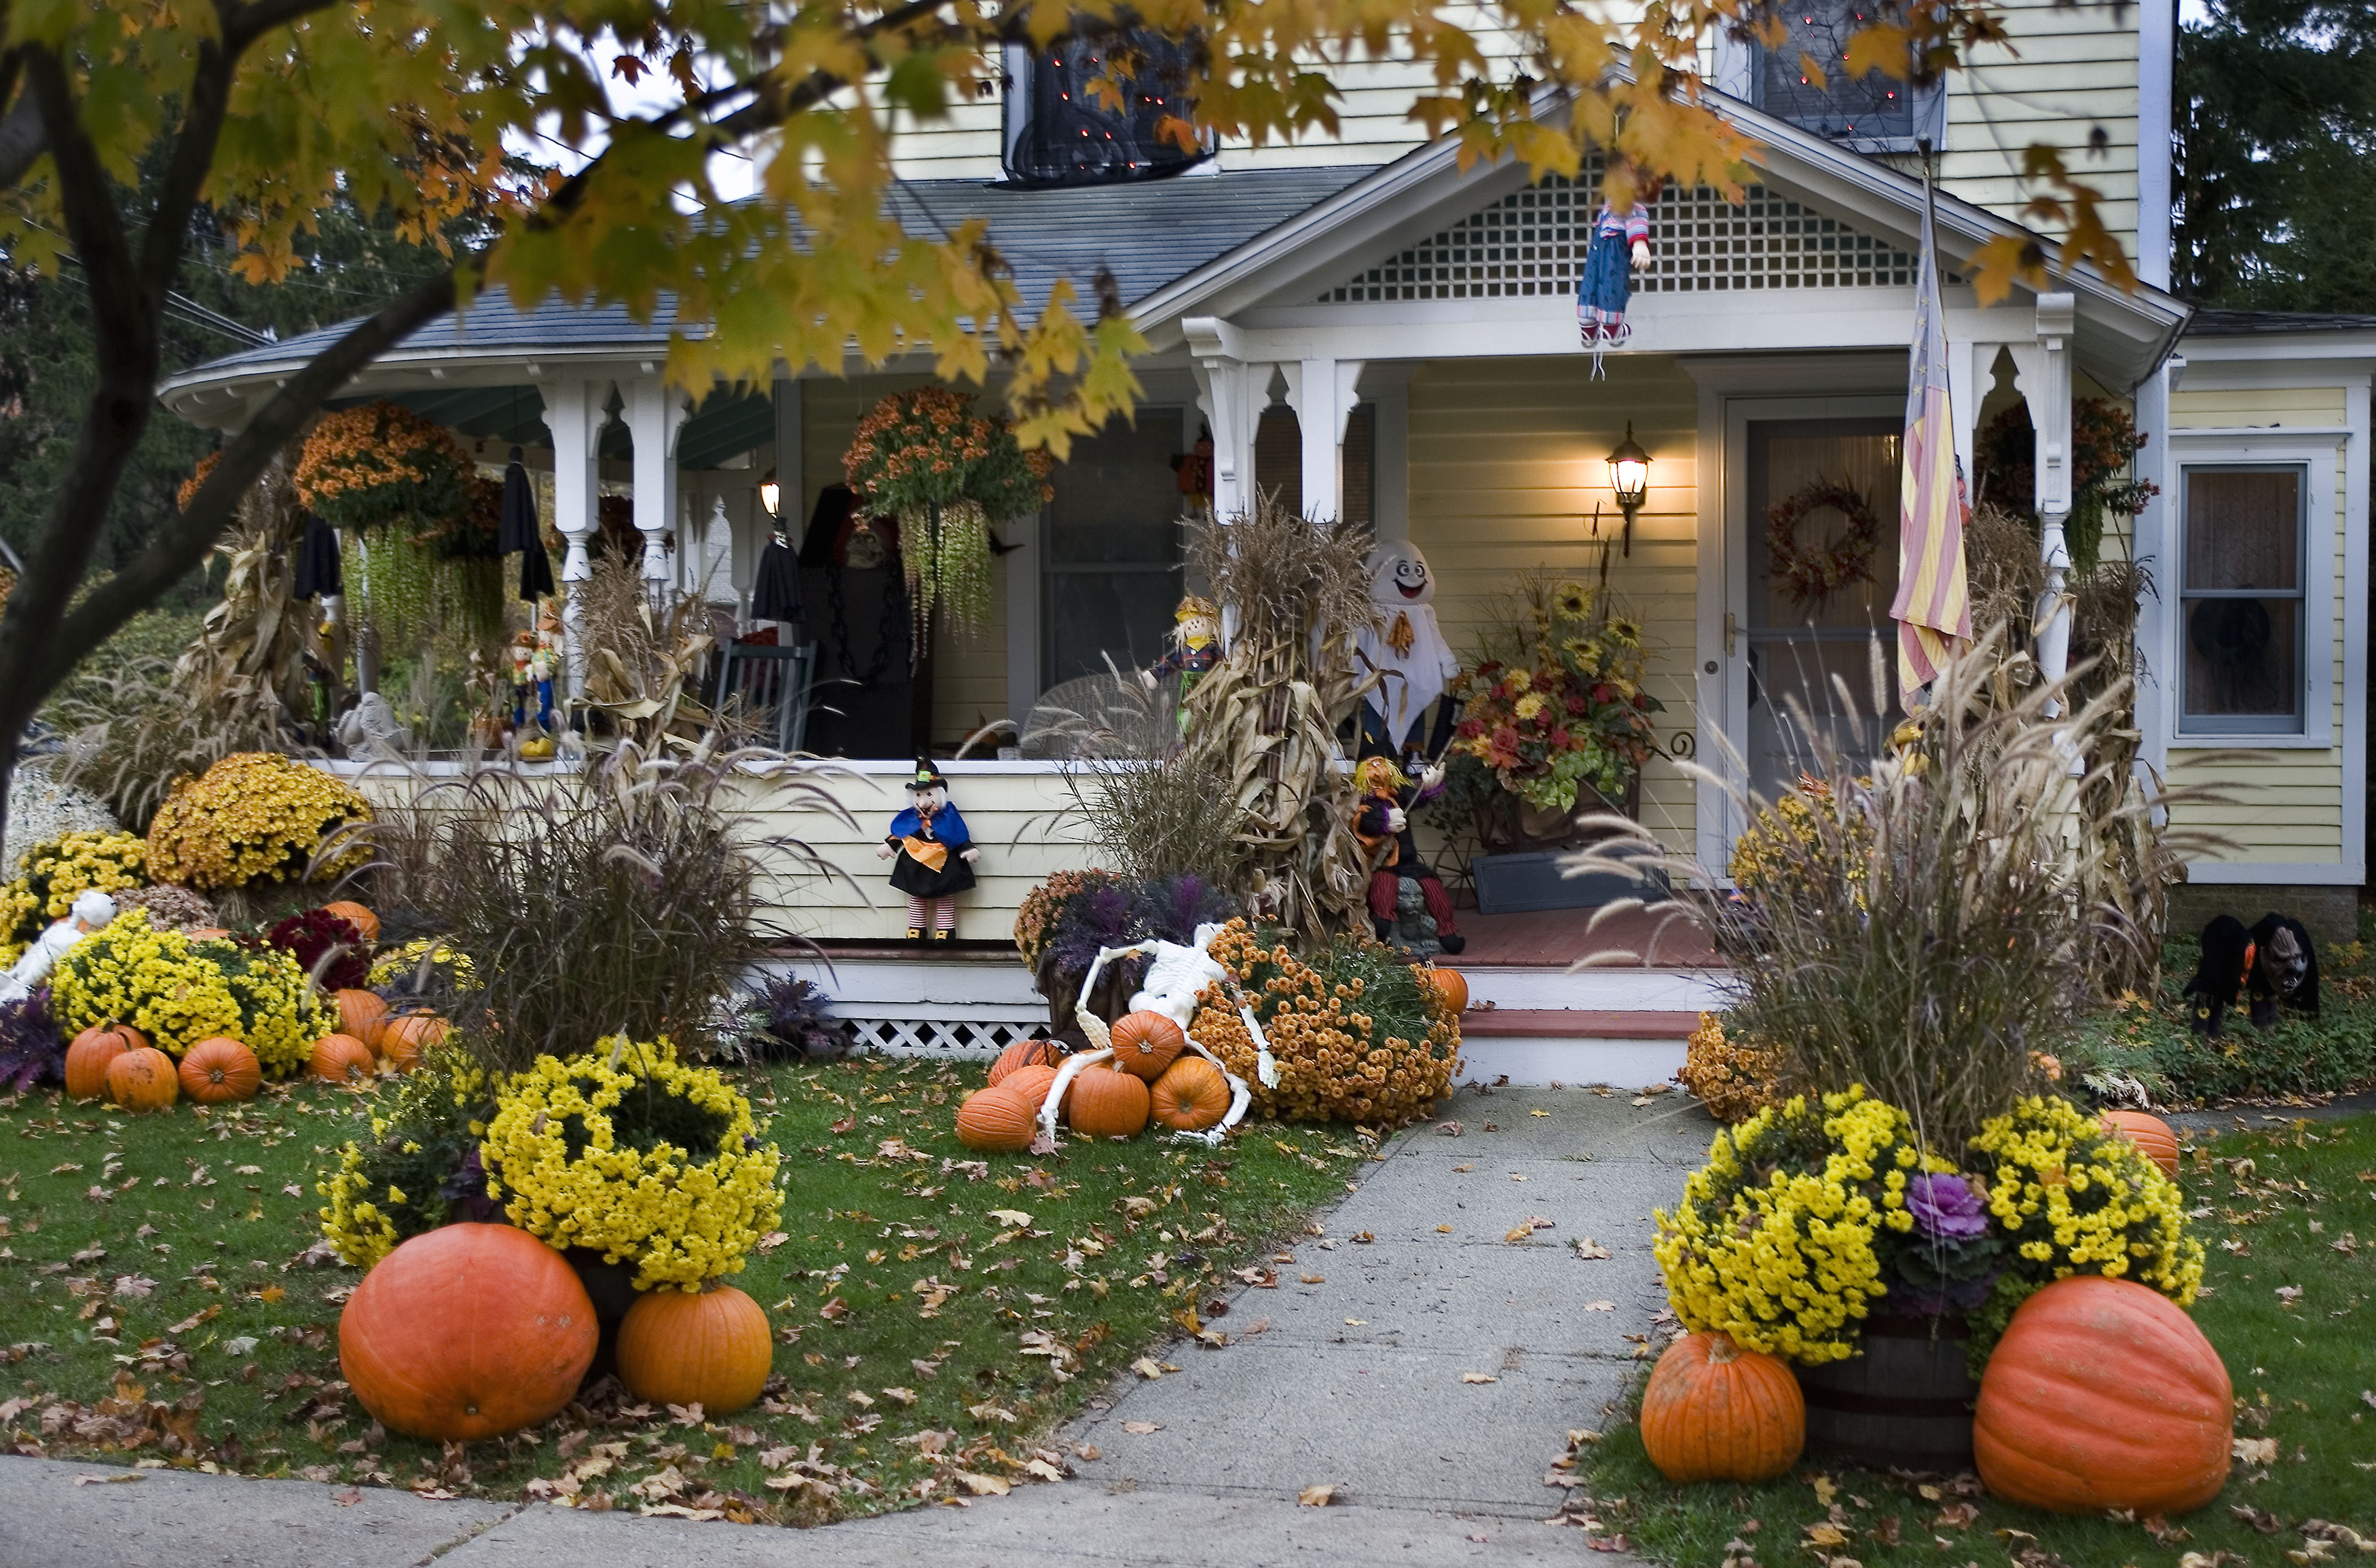 10 best outdoor halloween decorations porch decor ideas for Outside halloween decorations to make at home